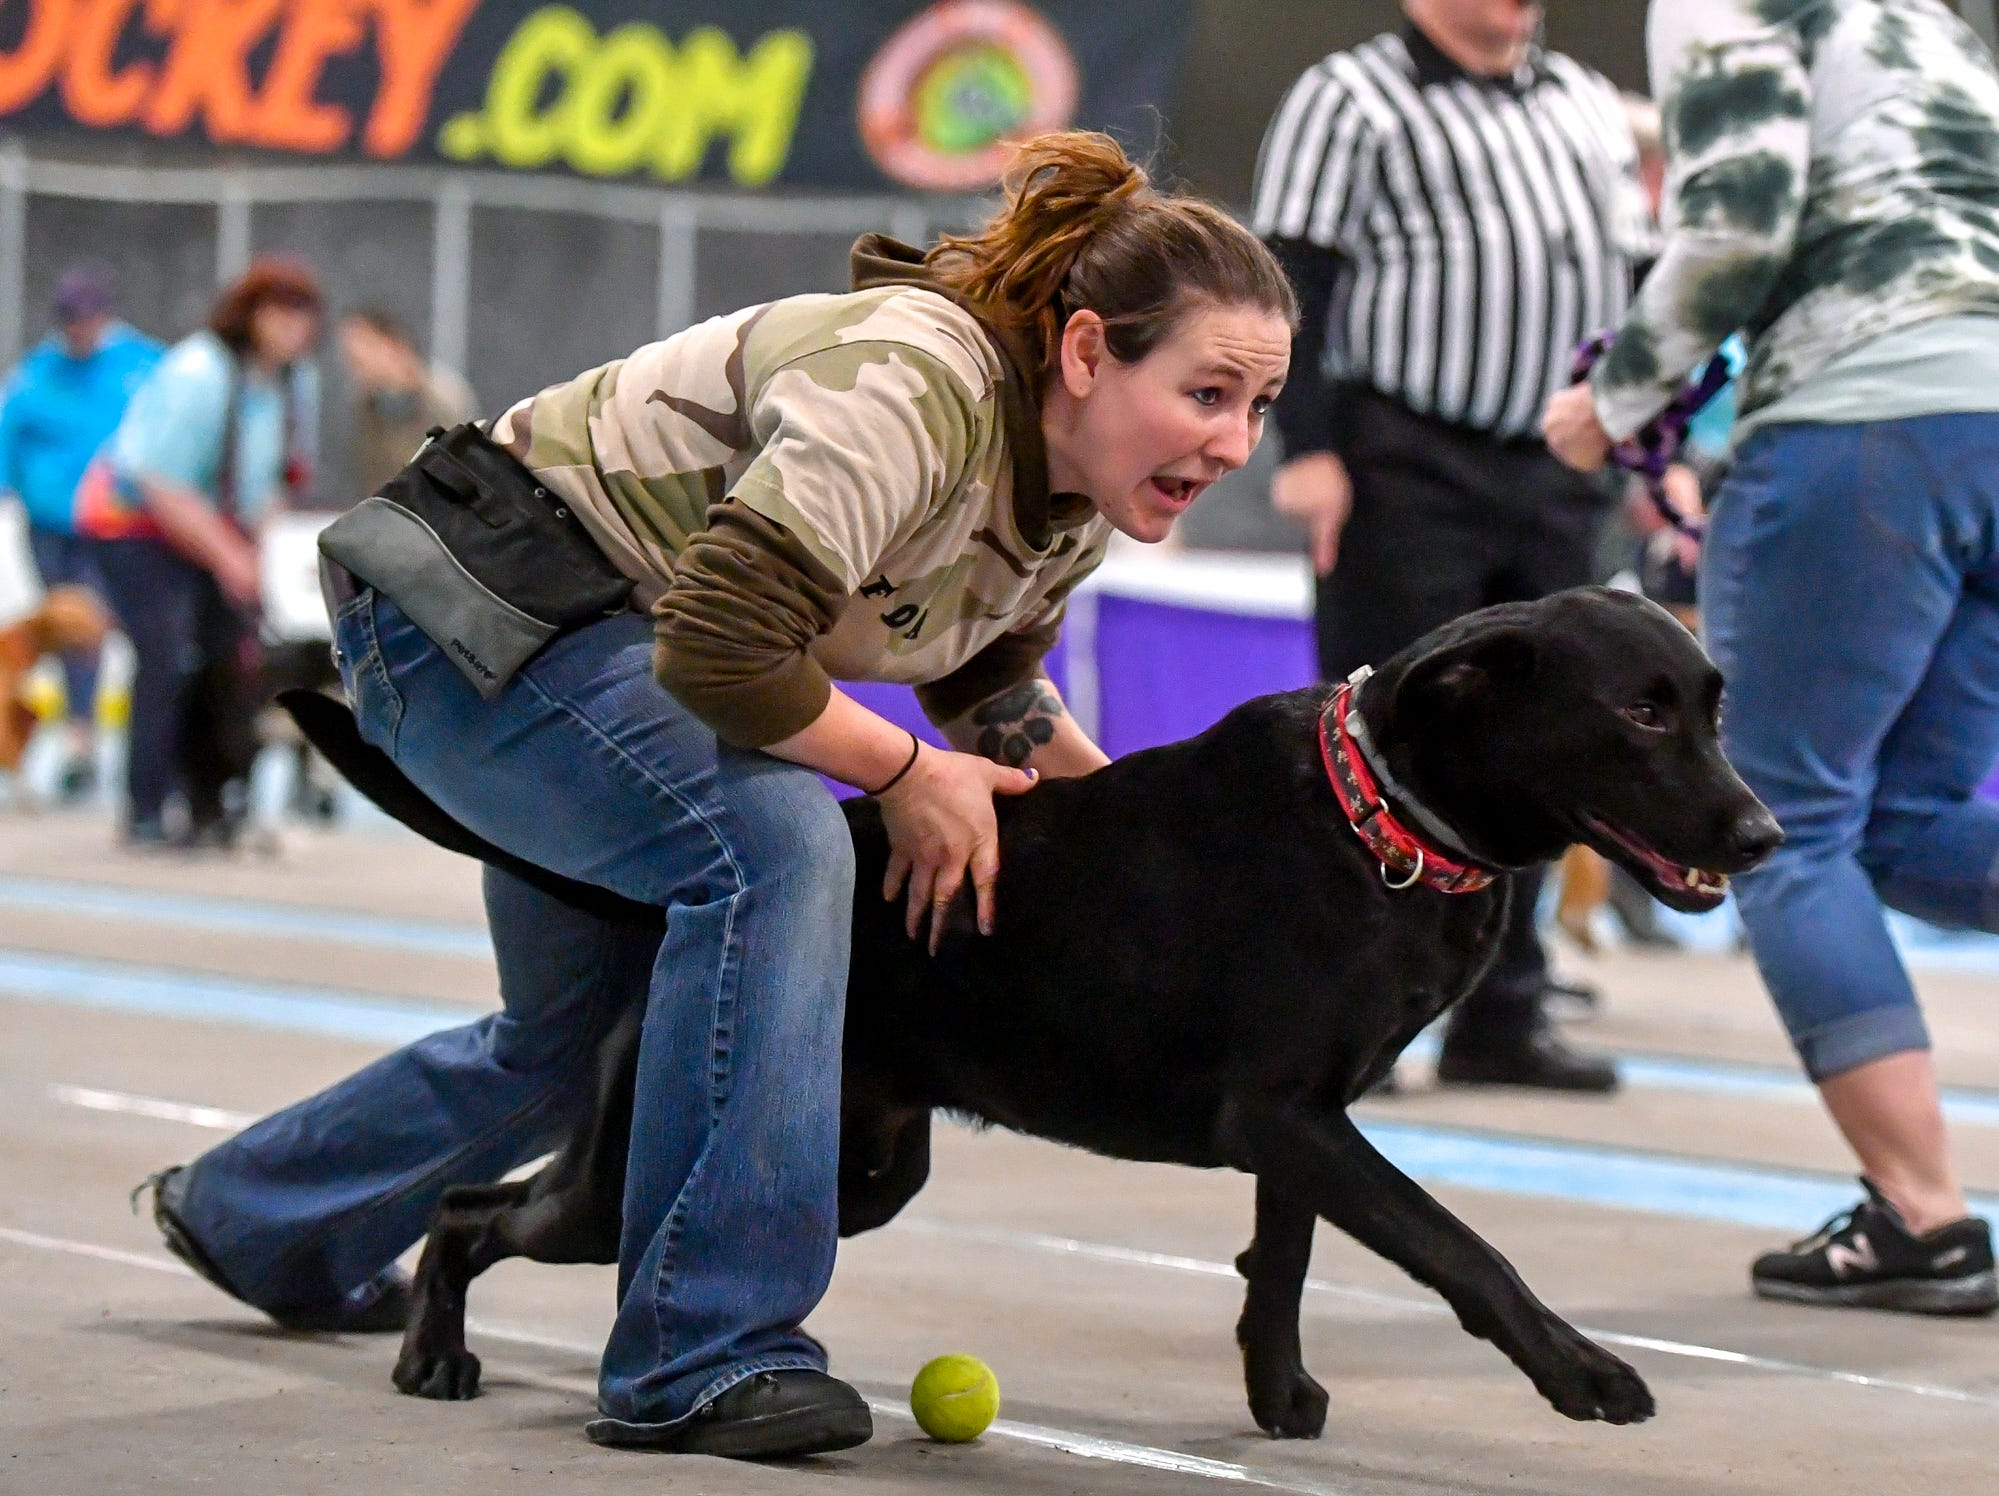 Raquel Neighoff of Marietta launches her black lab Riot as team Flyball Dogs Anonymous from Wrightsville compete against 40 other teams in the Clean Break Flyball tournament at the Yellow Breeches Sports Complex in New Cumberland, Sunday, April 7, 2019.